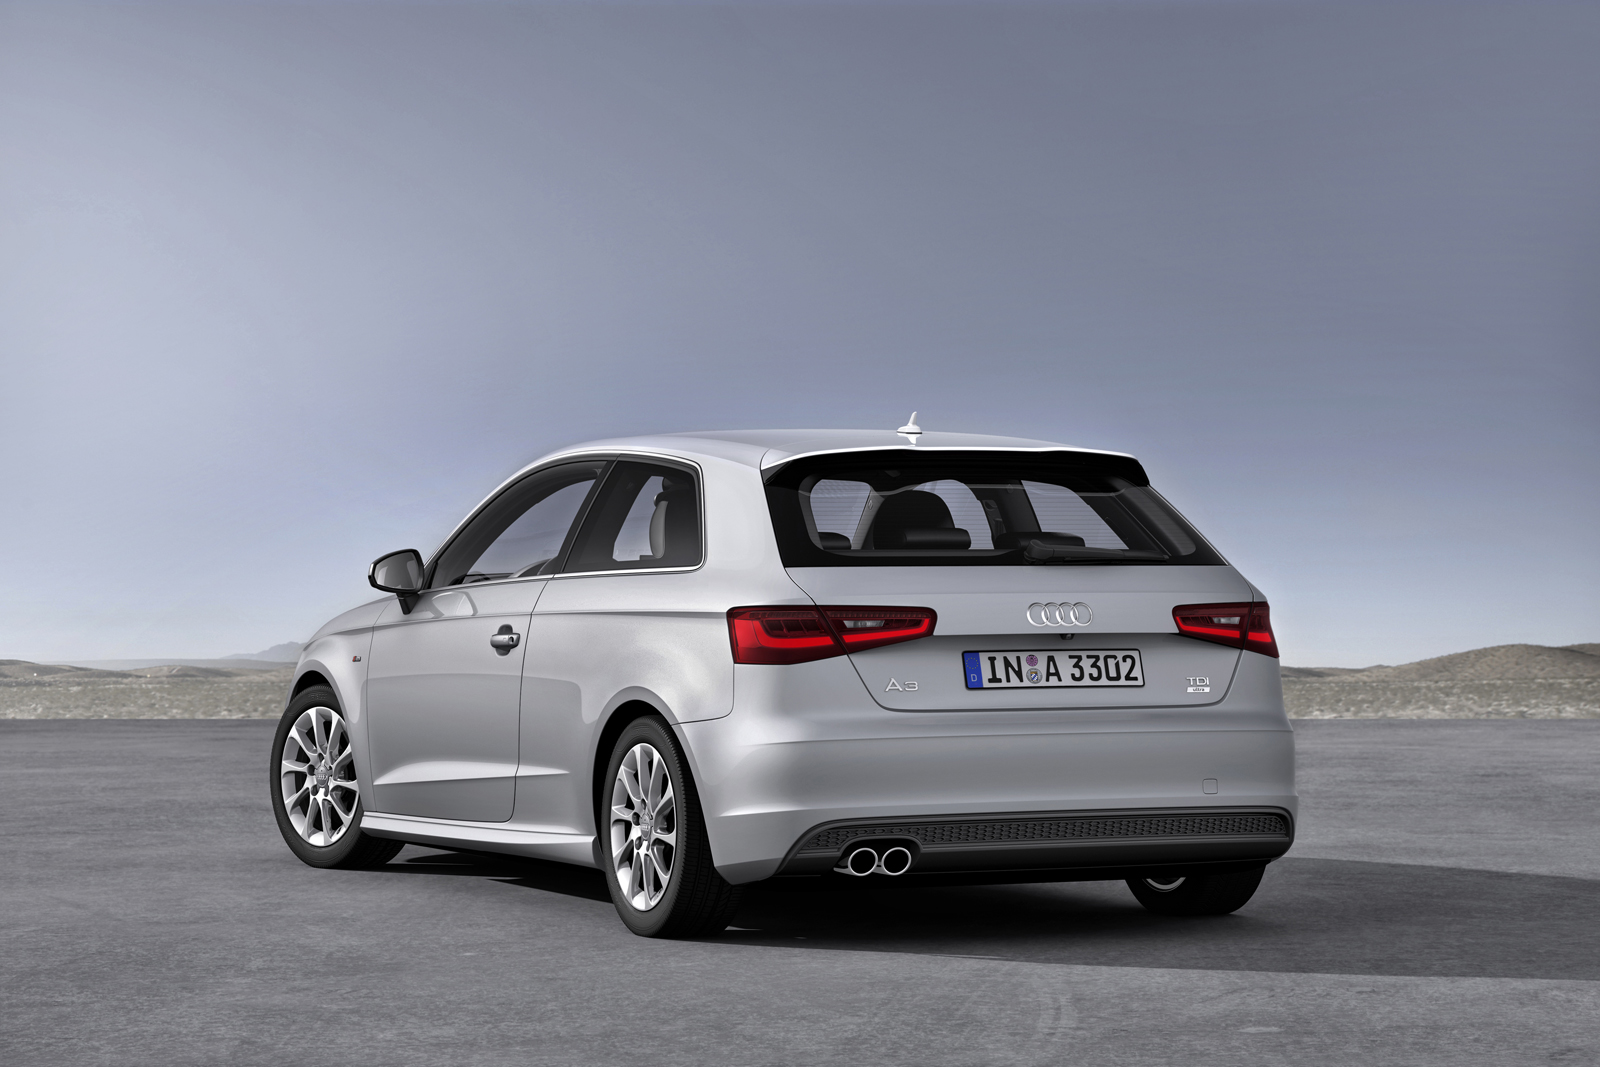 Le Meilleur Audi's New A4 A5 And A6 Ultra Models Average Between 3 9 Ce Mois Ci